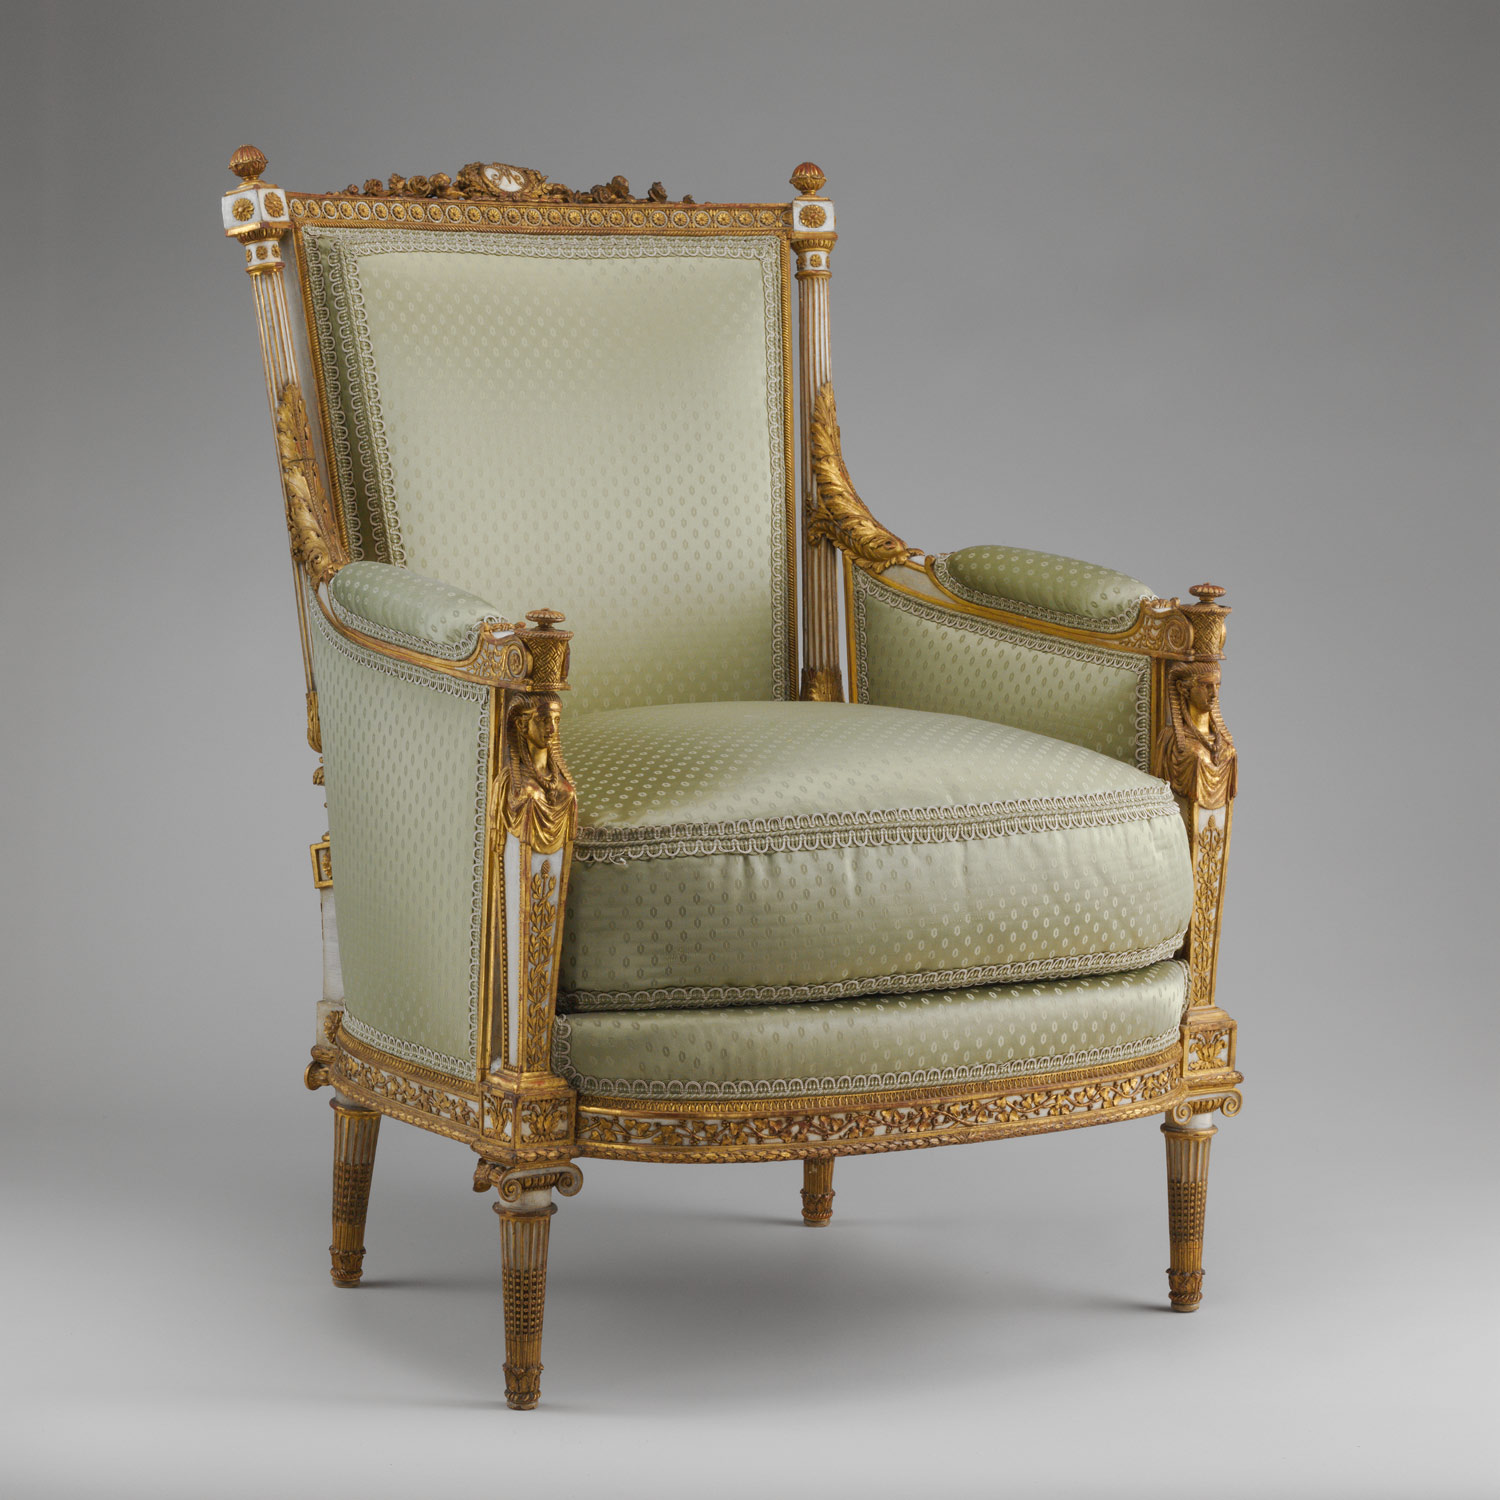 French Furniture In The Eighteenth Century Seat Furniture